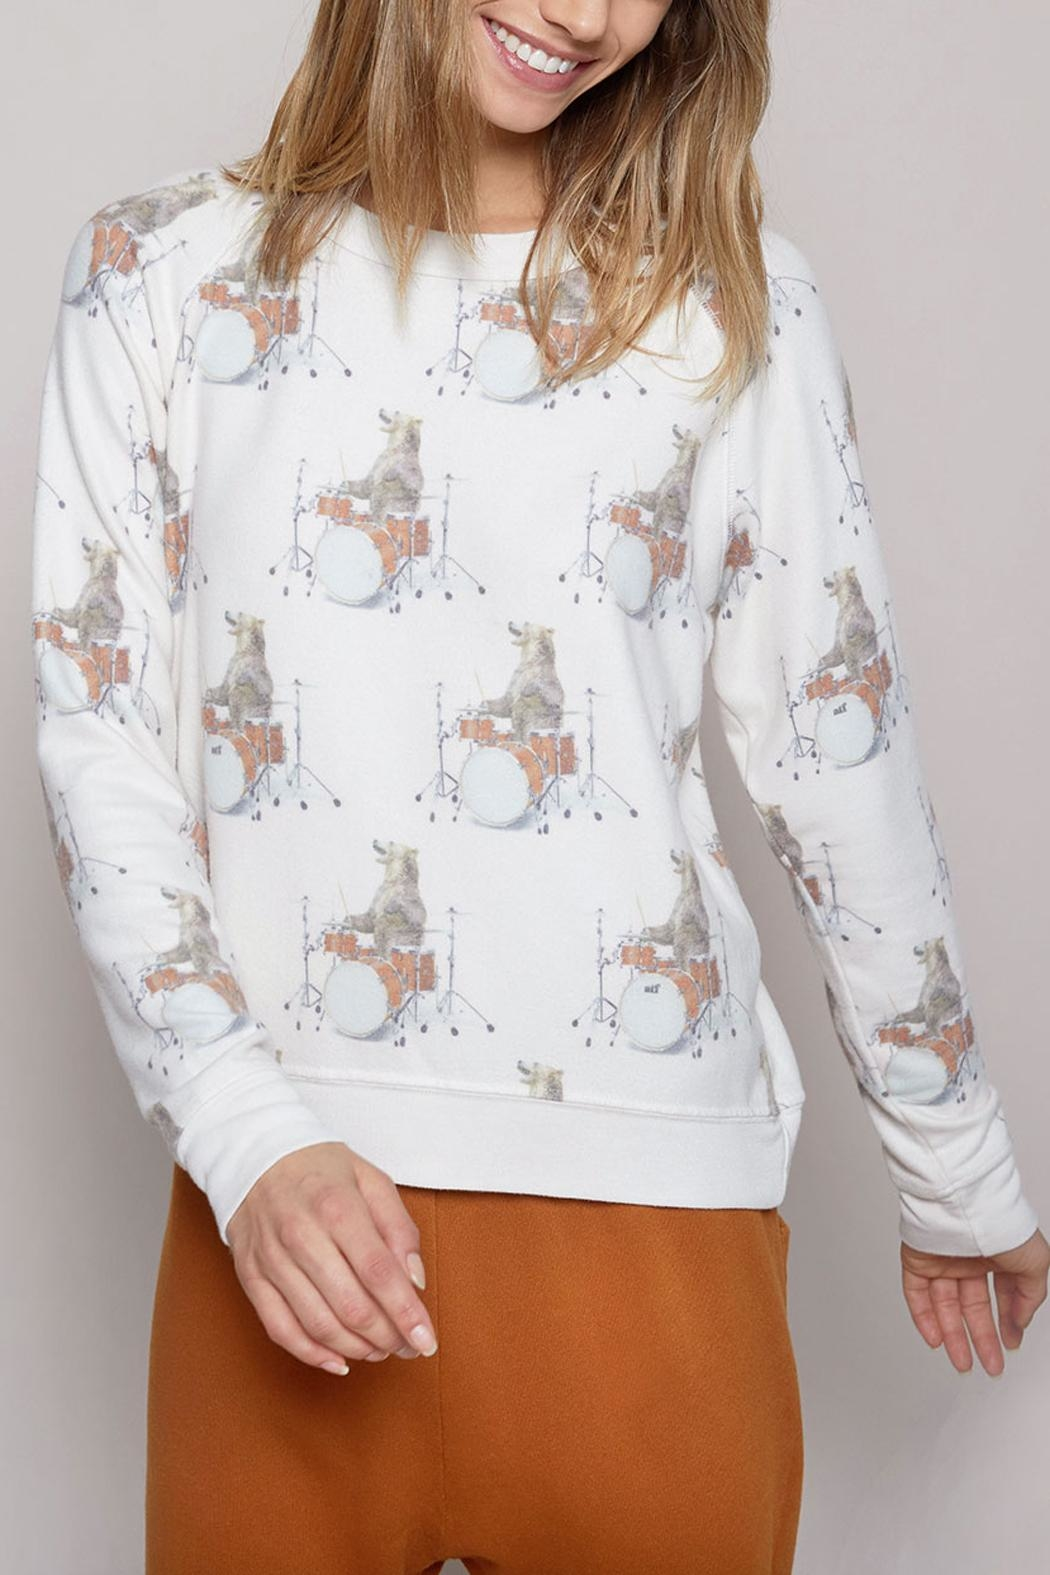 All Things Fabulous Drummer Bear Sweater - Front Full Image